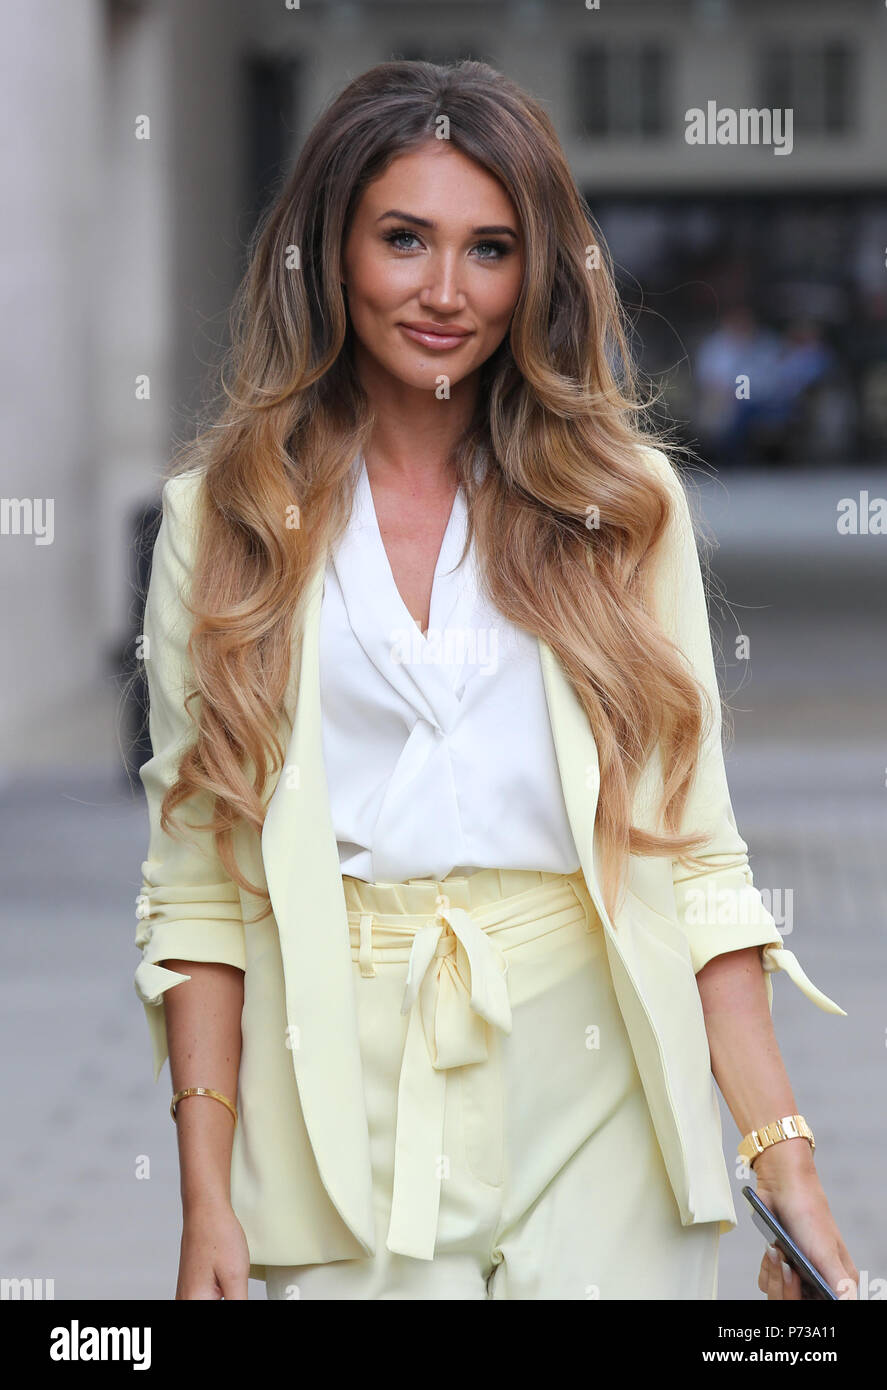 Images Megan McKenna nudes (95 photos), Tits, Leaked, Instagram, butt 2020